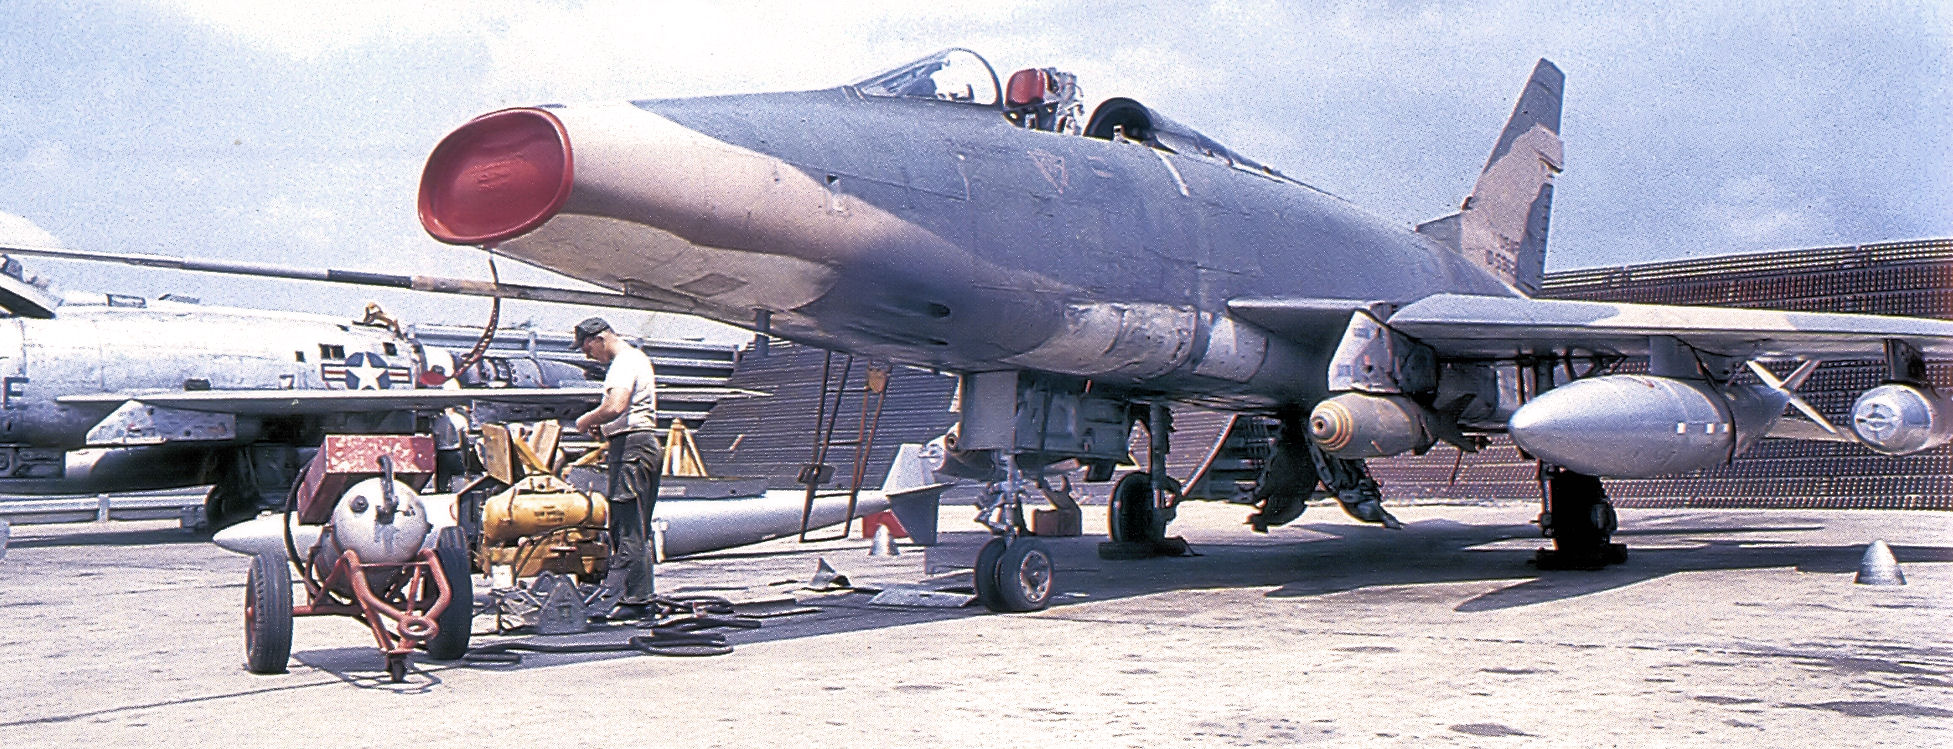 File:429th Tactical Fighter Squadron North American F-100D ...